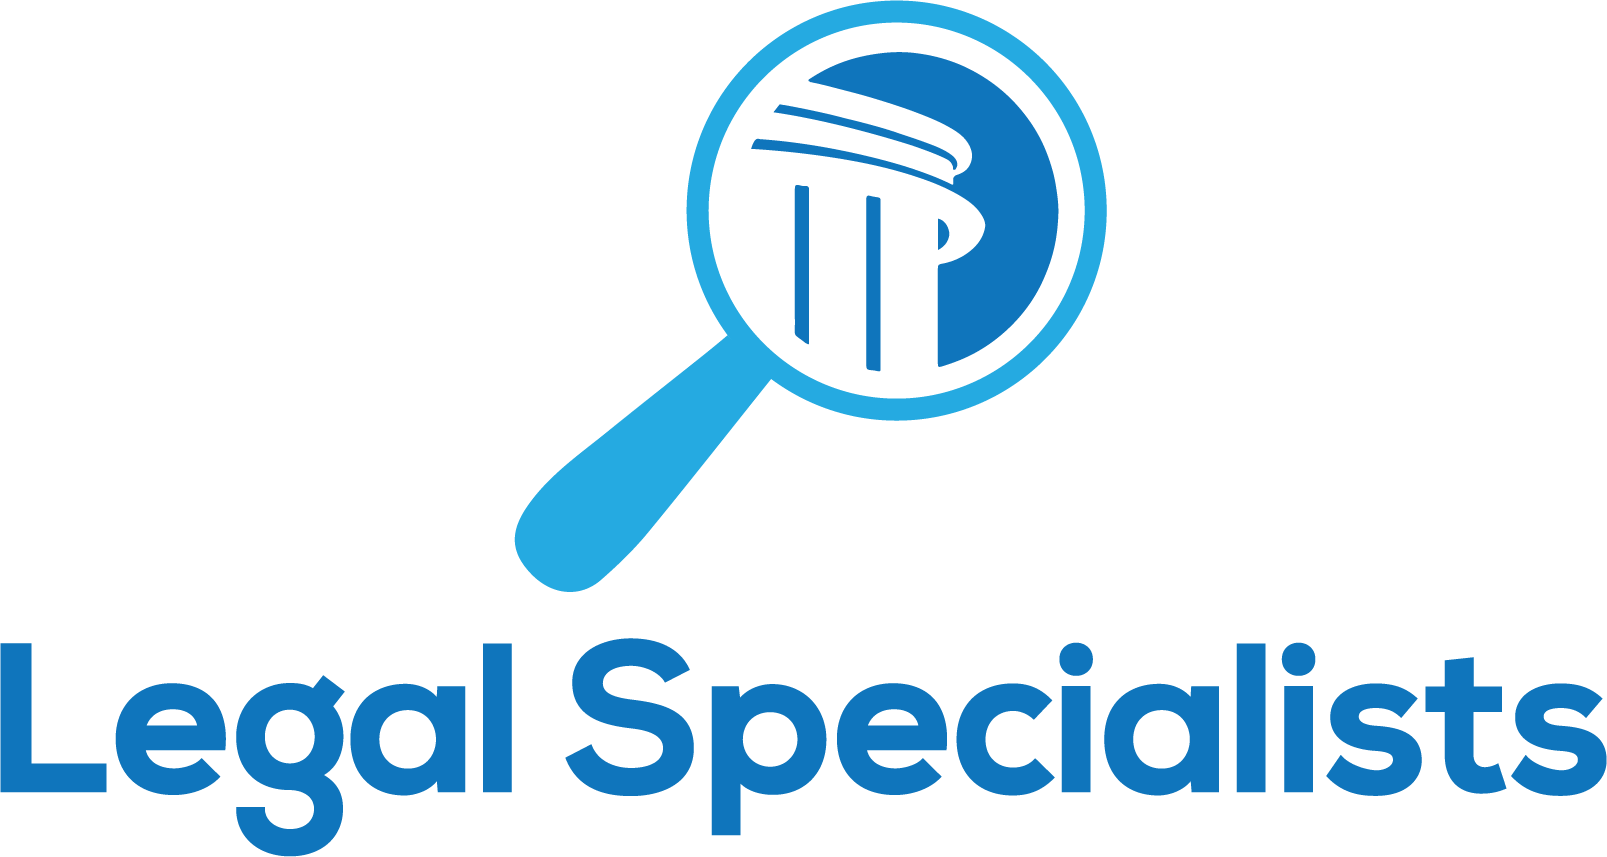 LEGAL SPECIALISTS